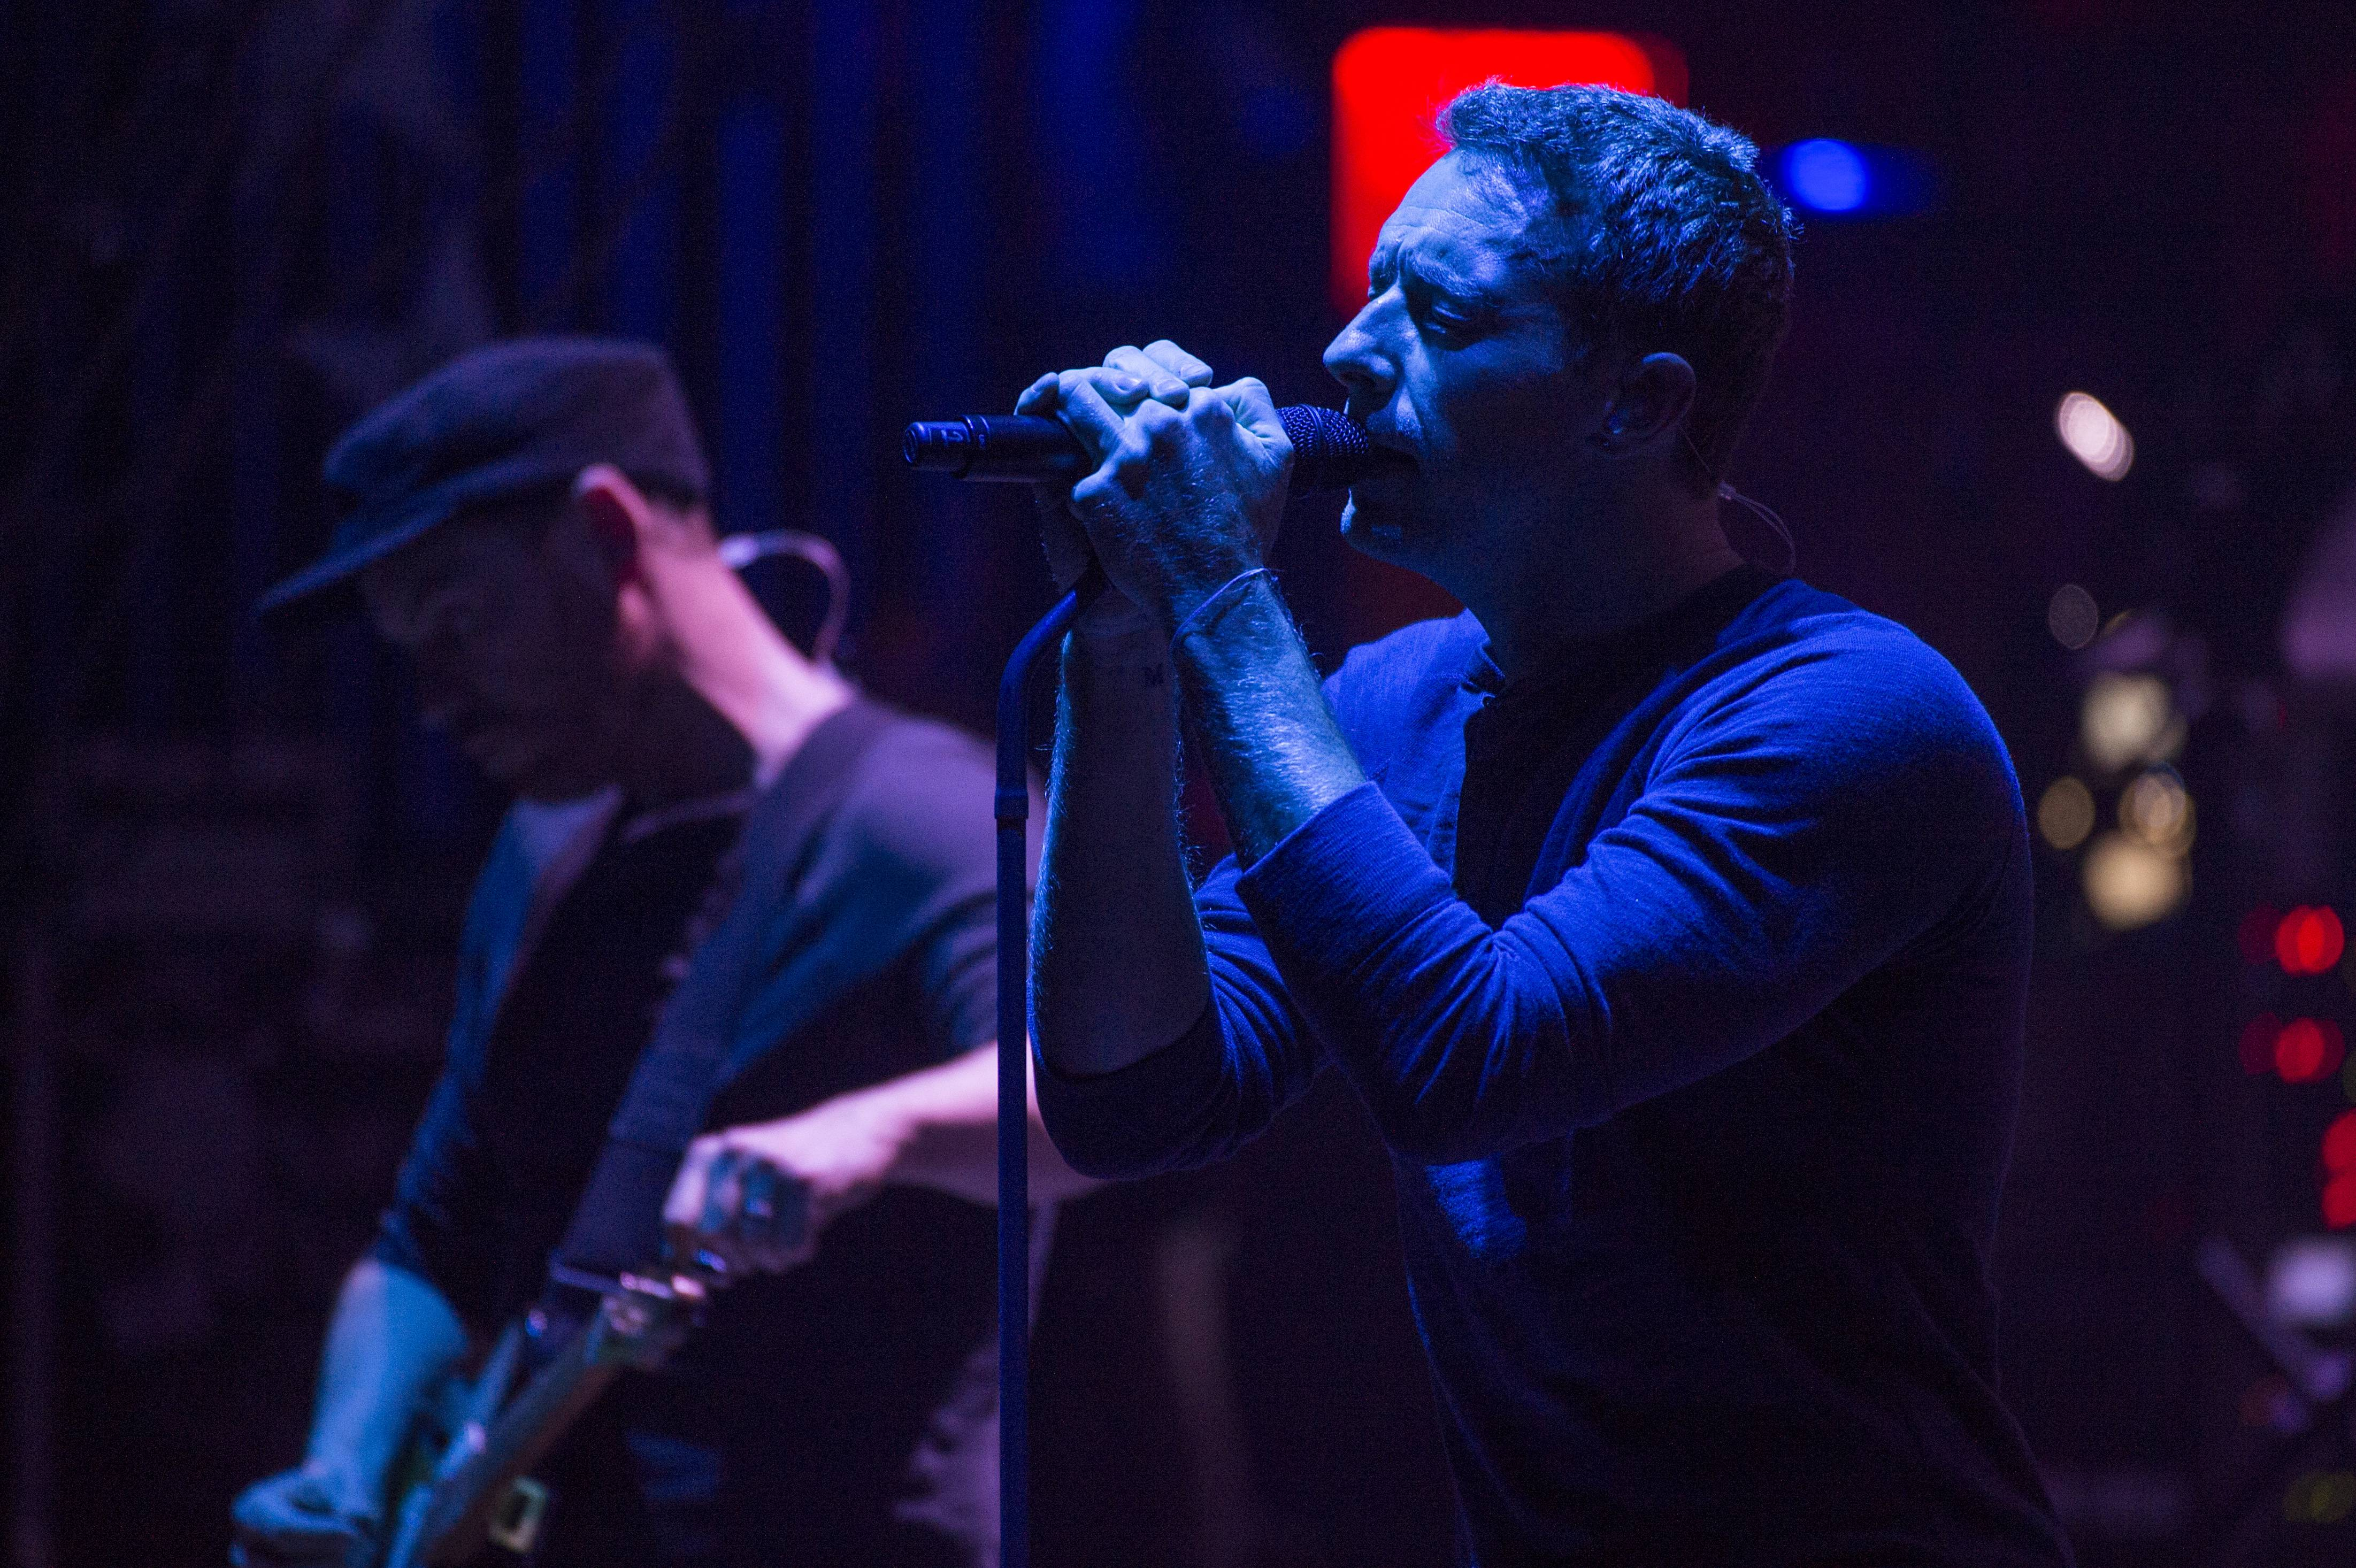 Chris Martin, right, and Jonny Buckland from the band Coldplay perform at the Beacon Theatre on Monday, May 5, 2014, in New York.